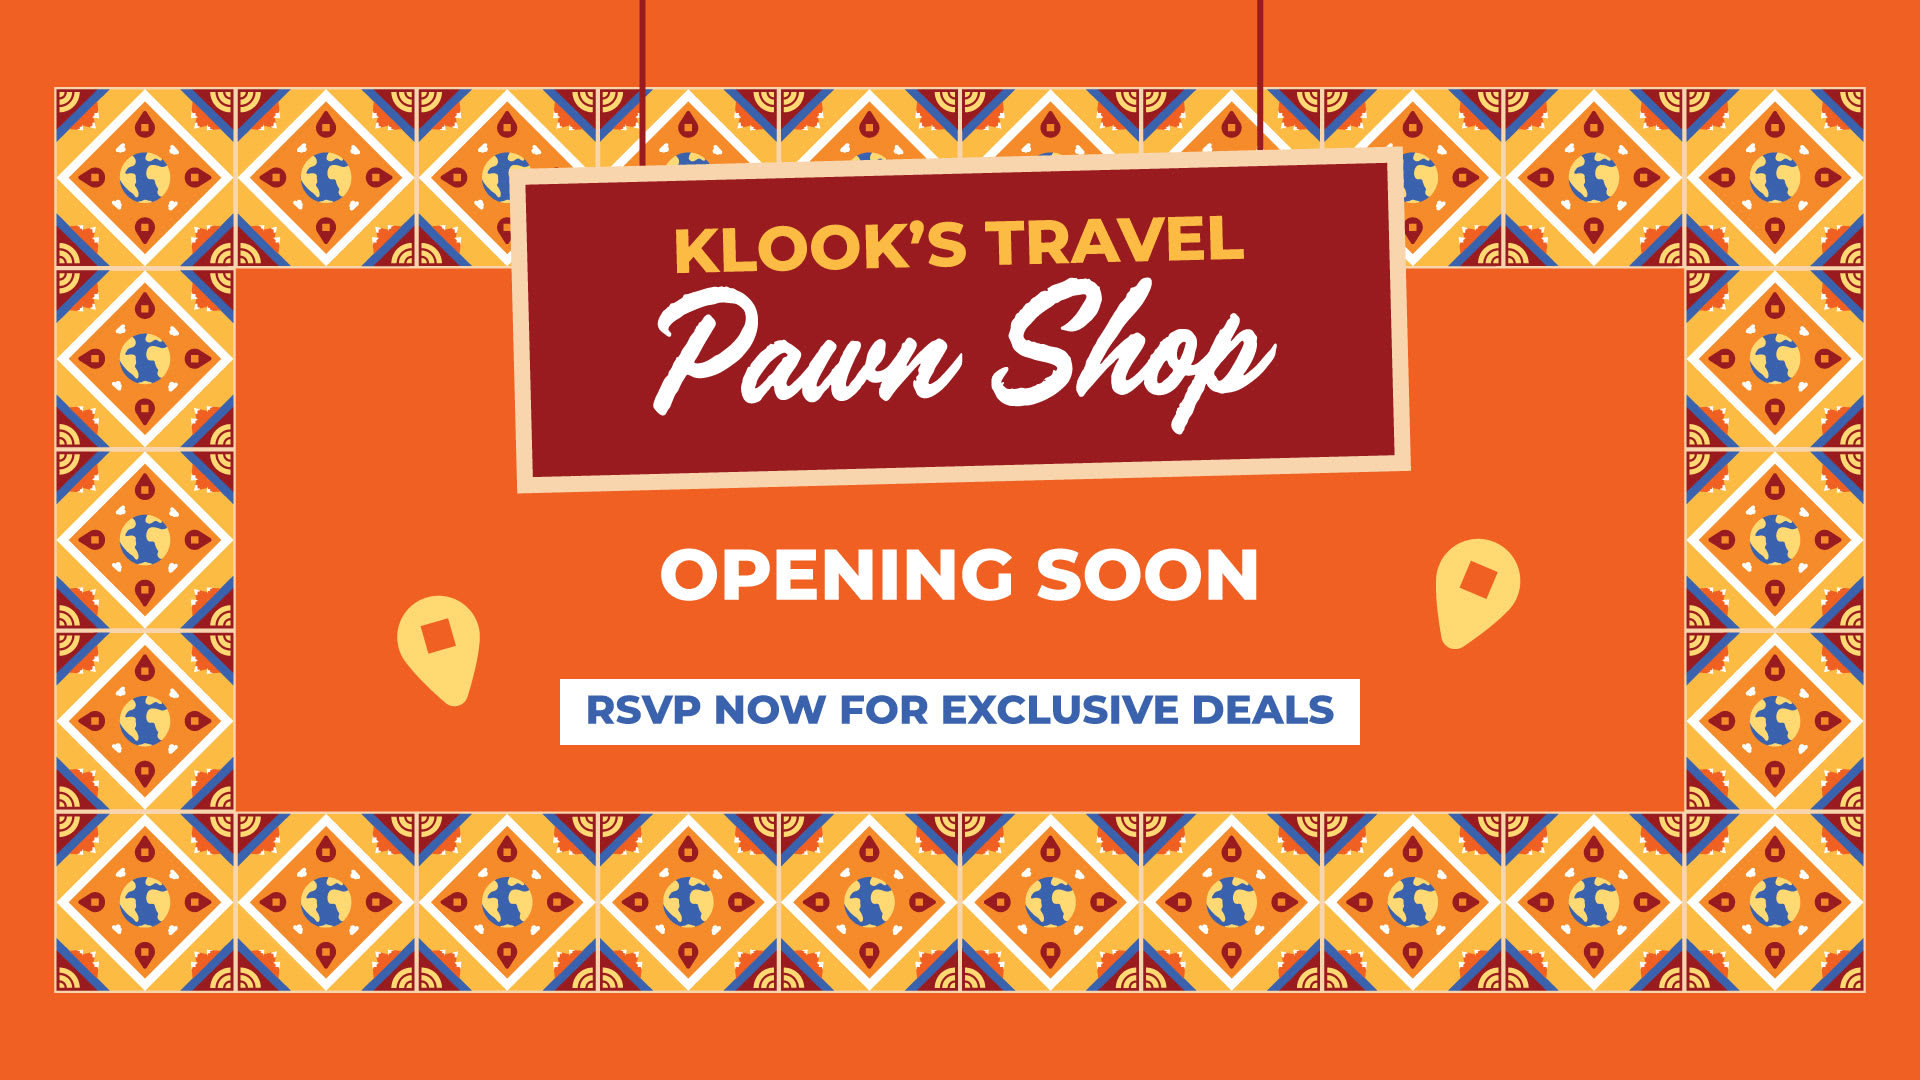 Free Travel Experiences, Flash Sales And More At Klook's